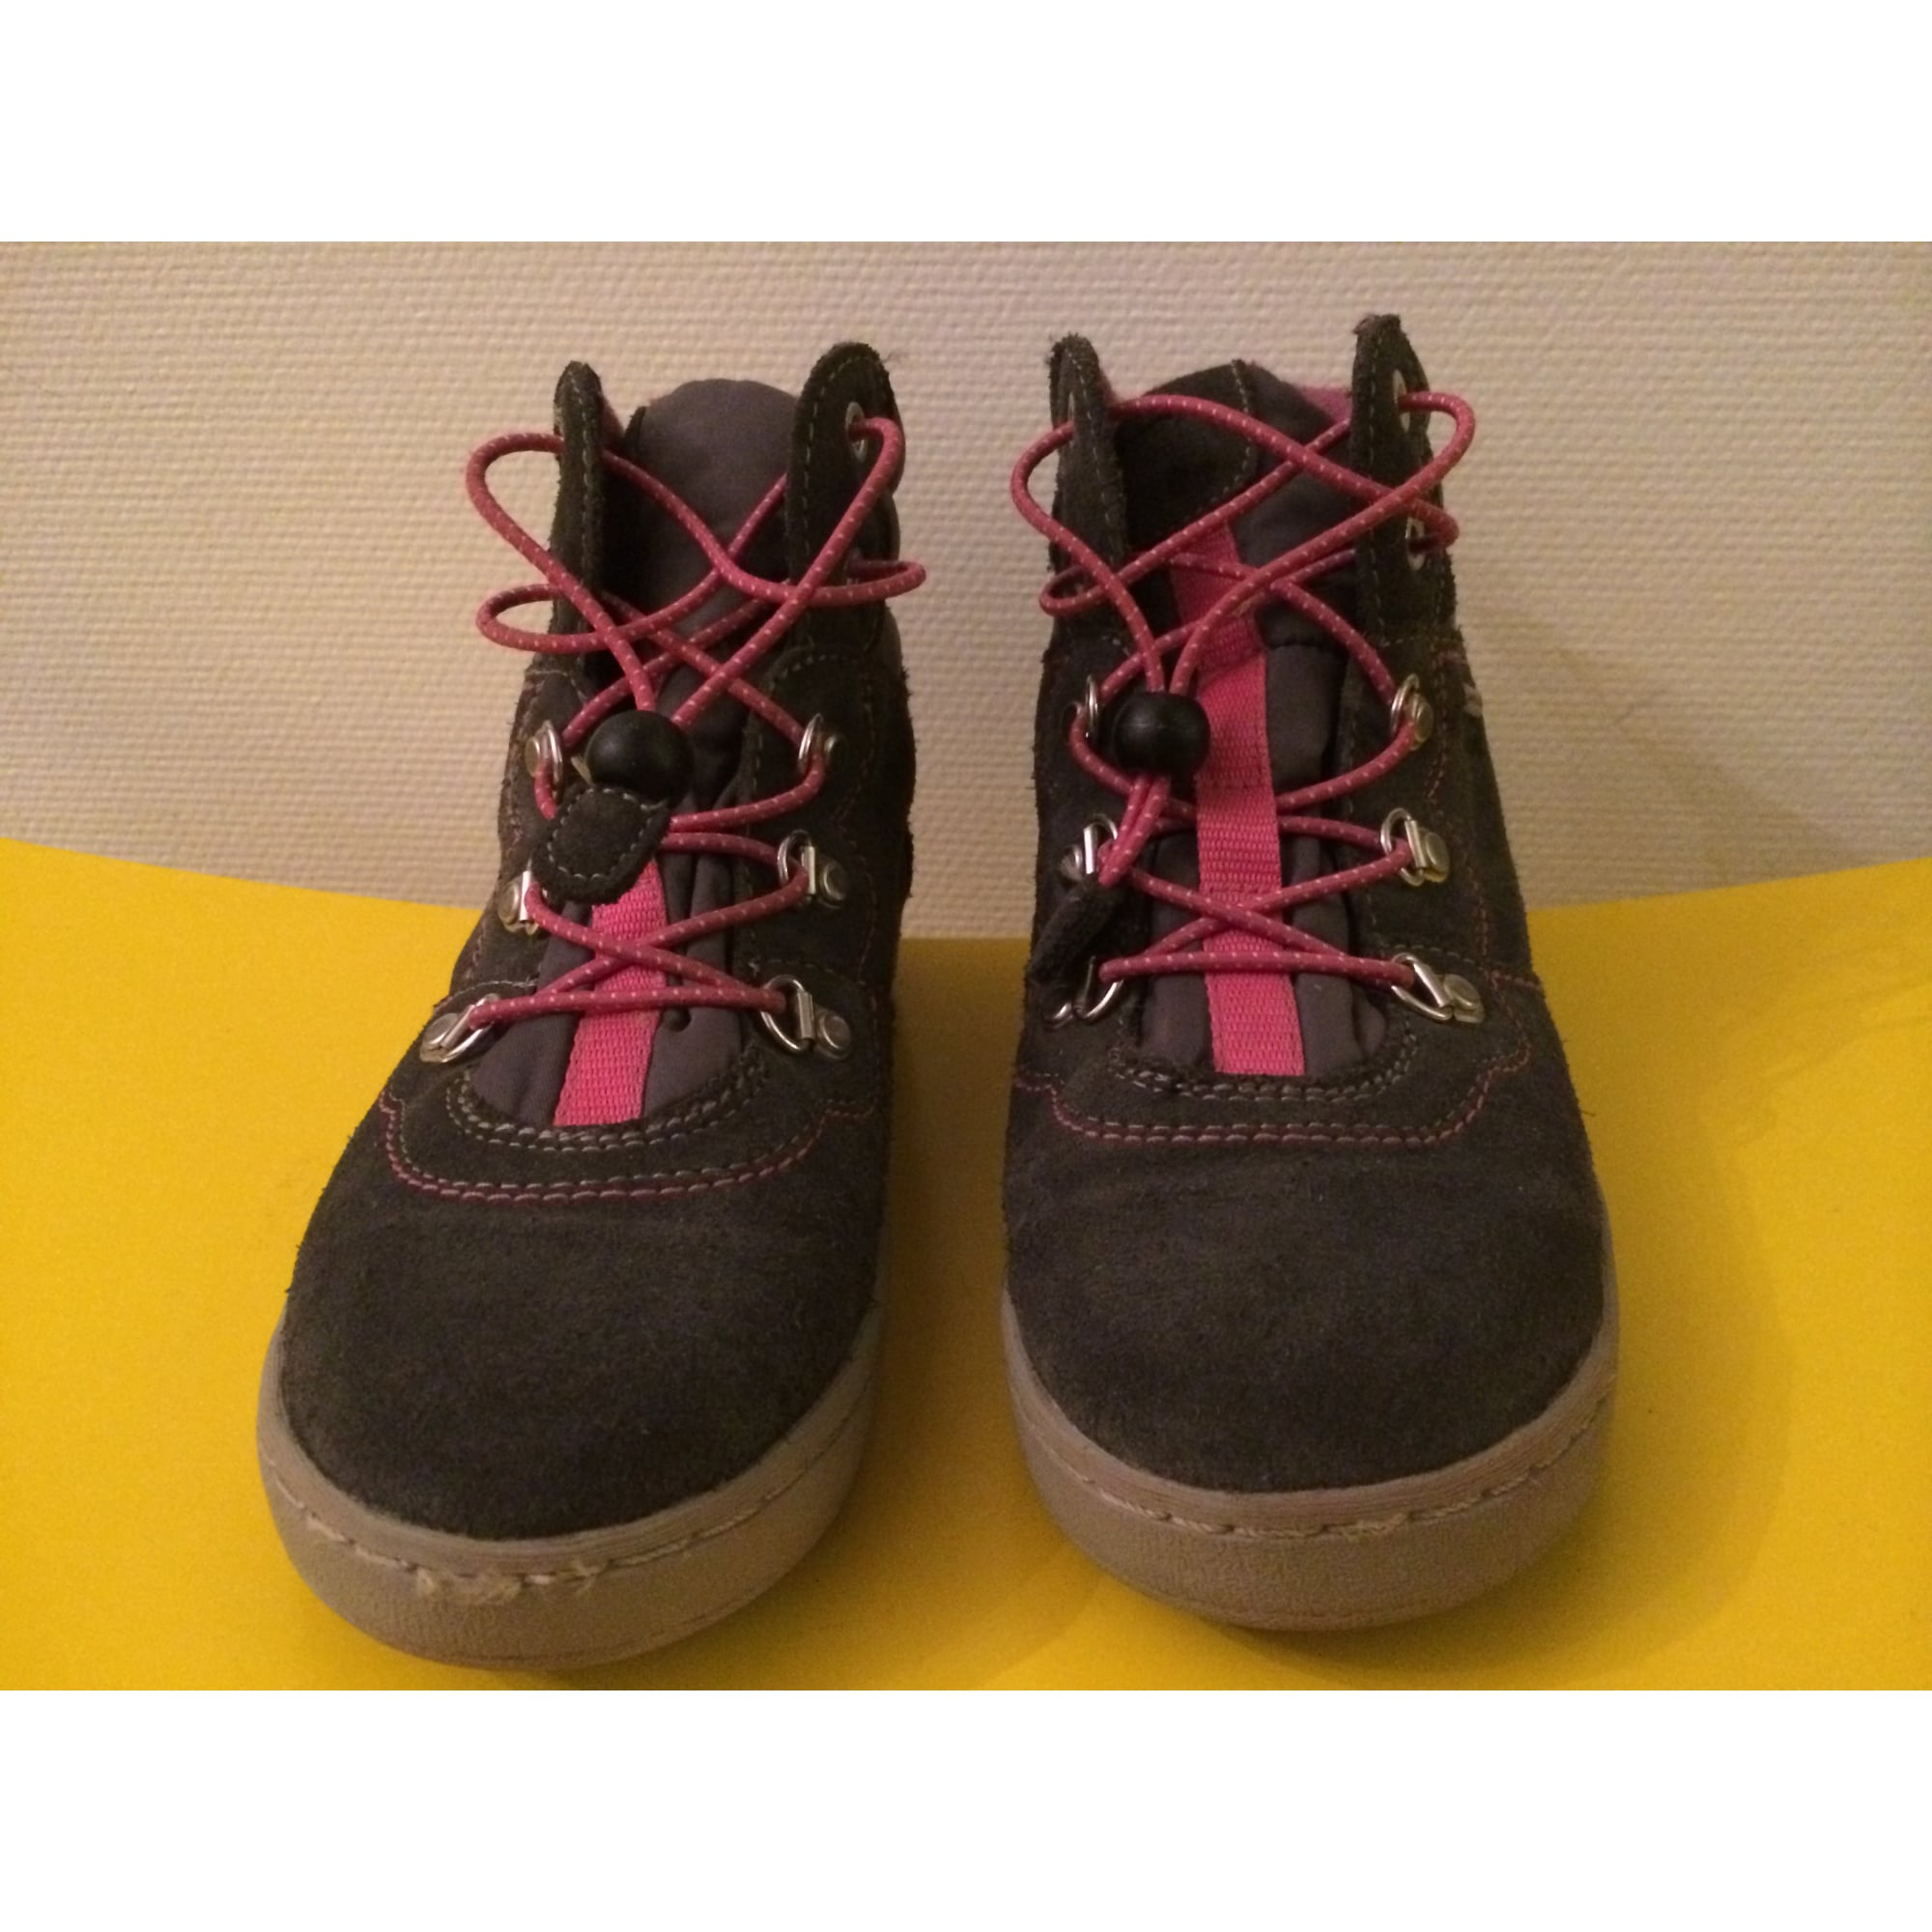 Chaussures à lacets GEOX Gris, anthracite